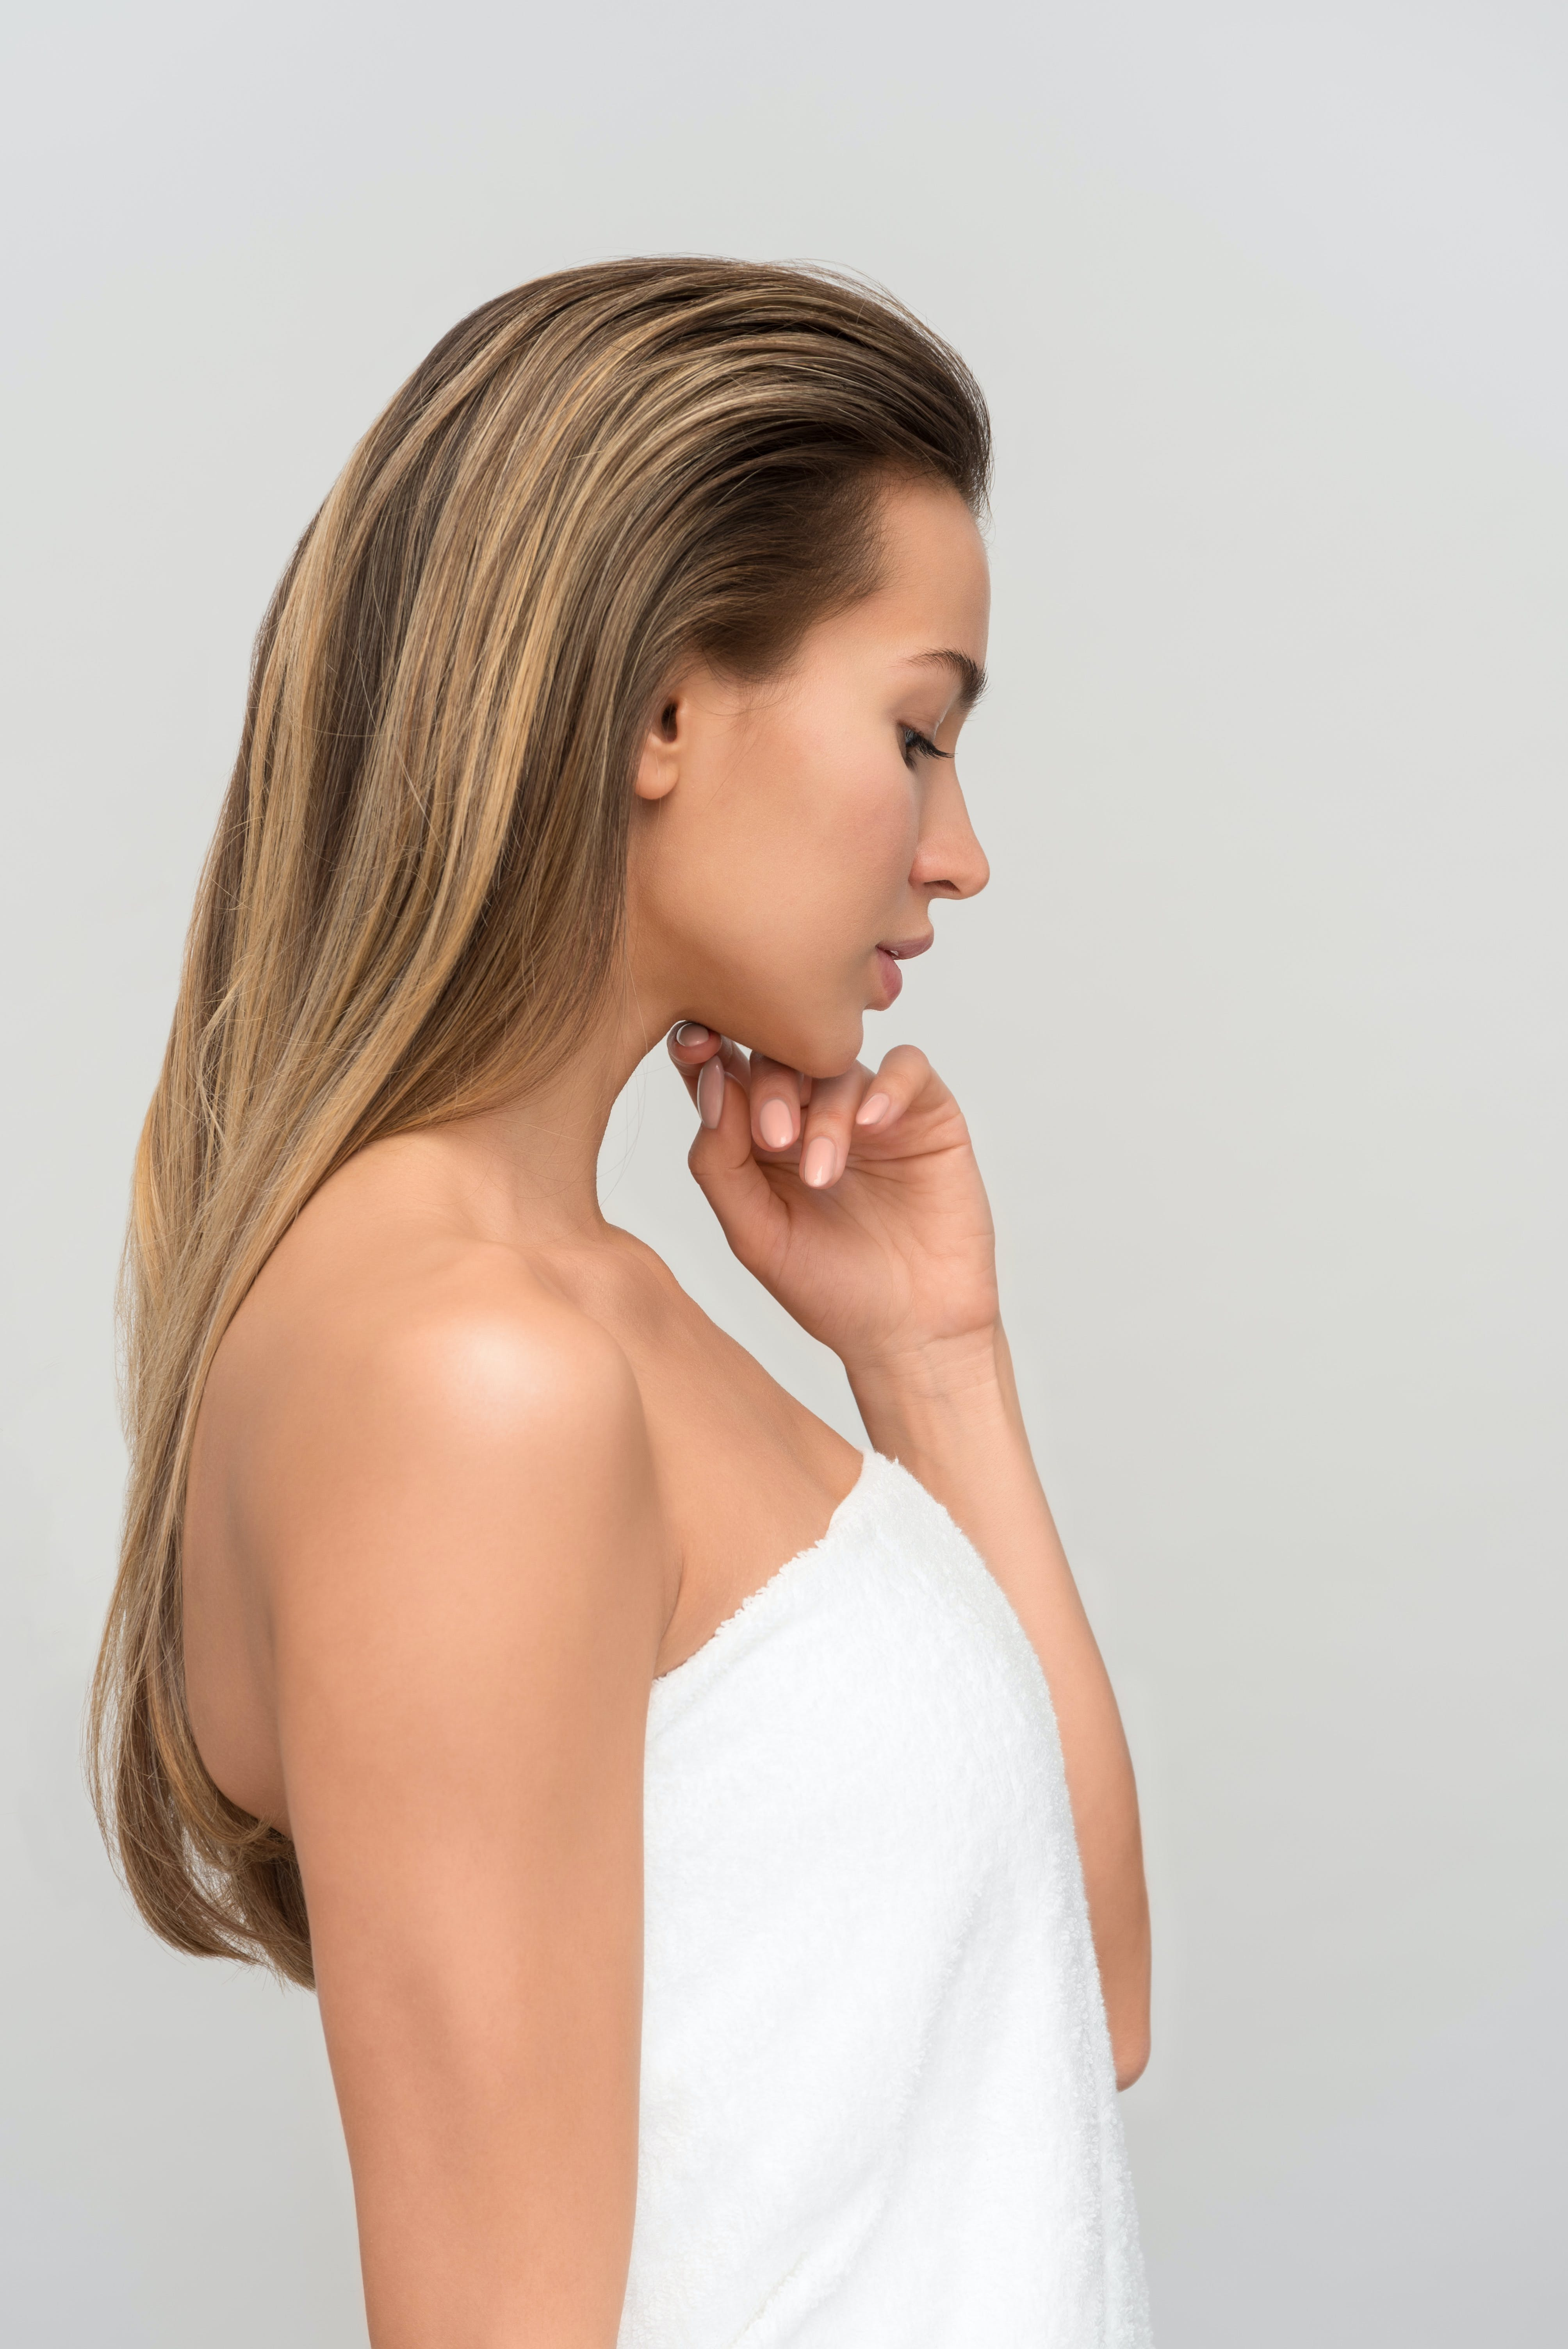 Female Standing With Left Hand on Chin